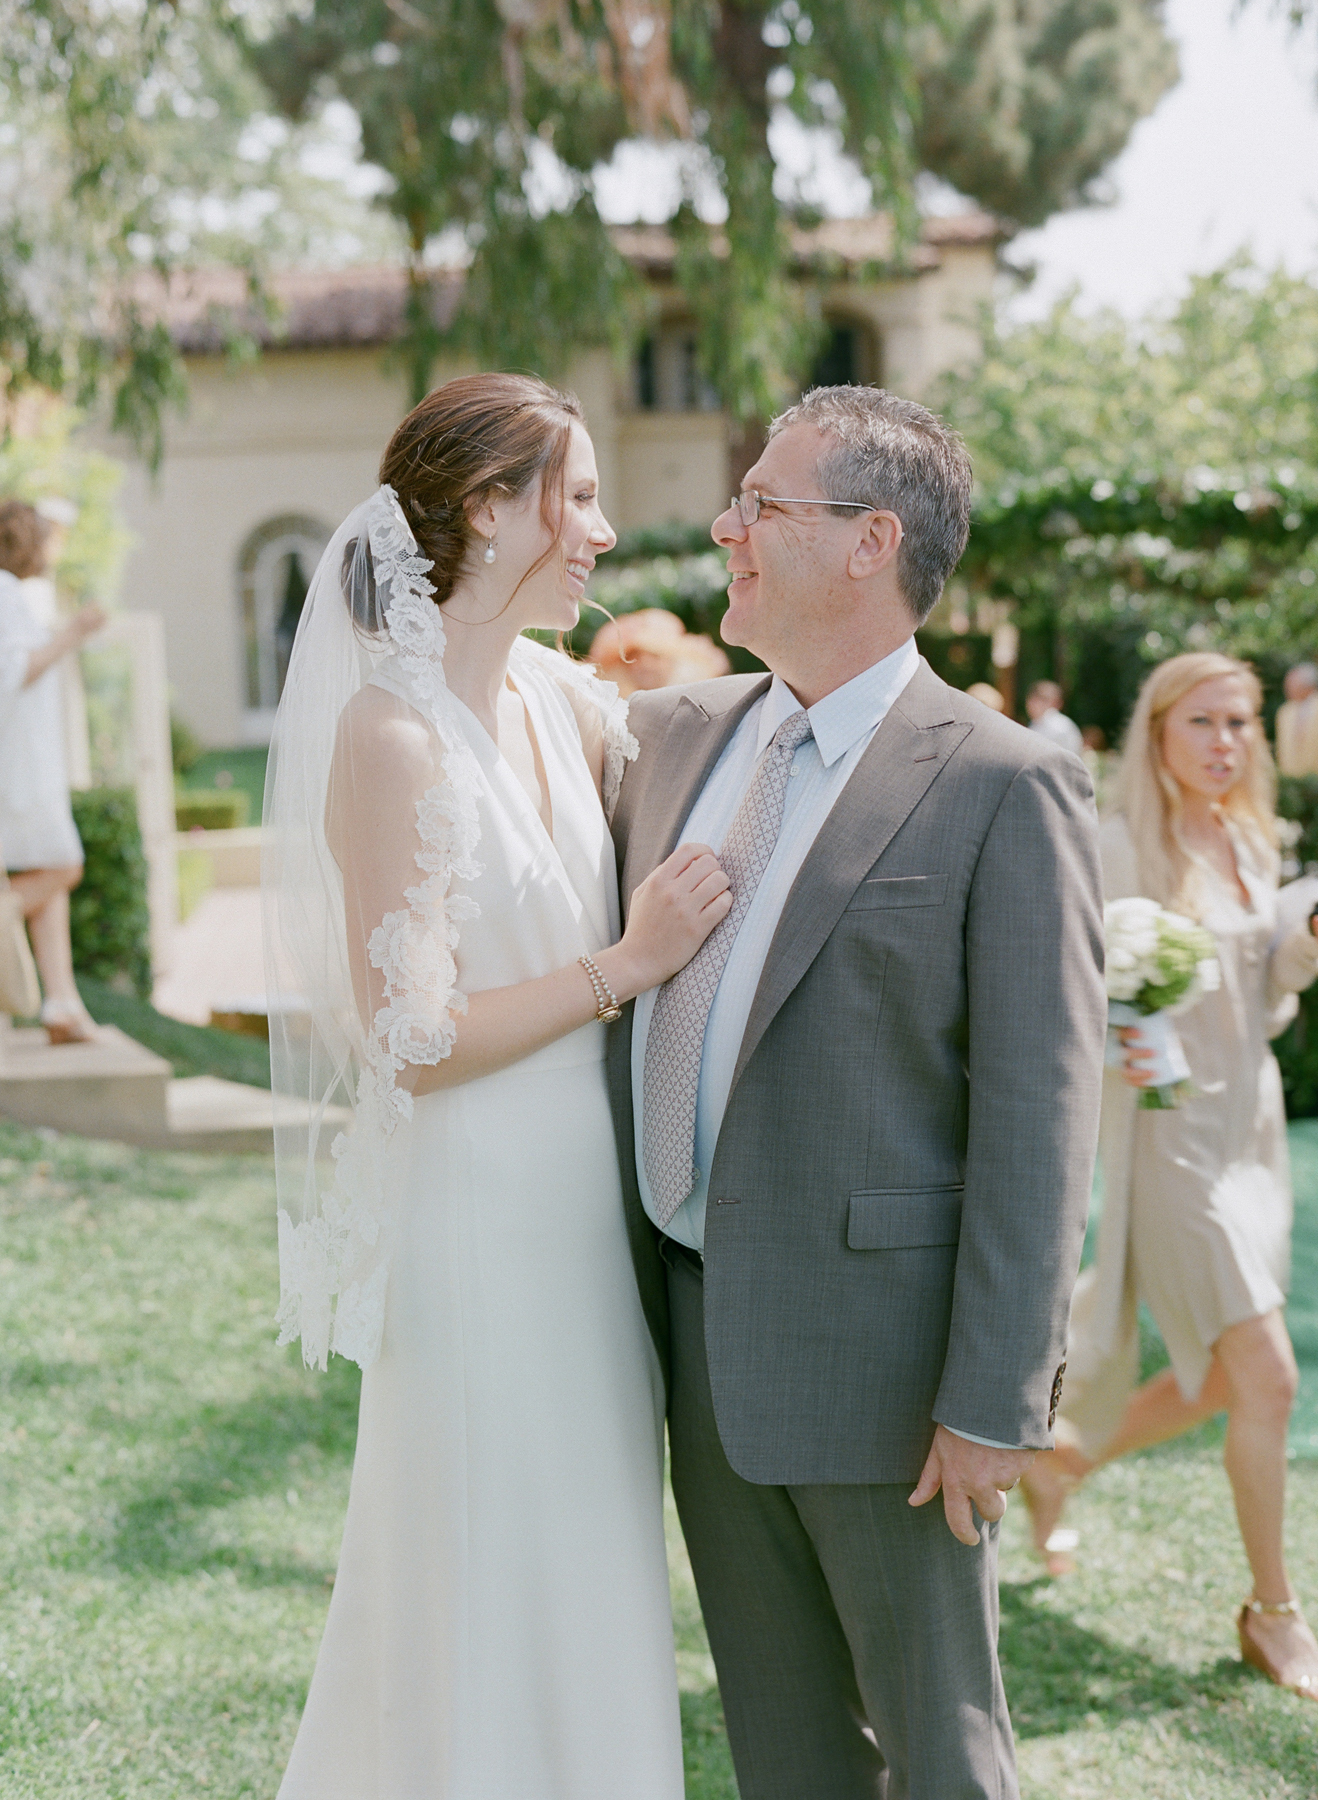 bride with father of bride for walk down aisle morning wedding